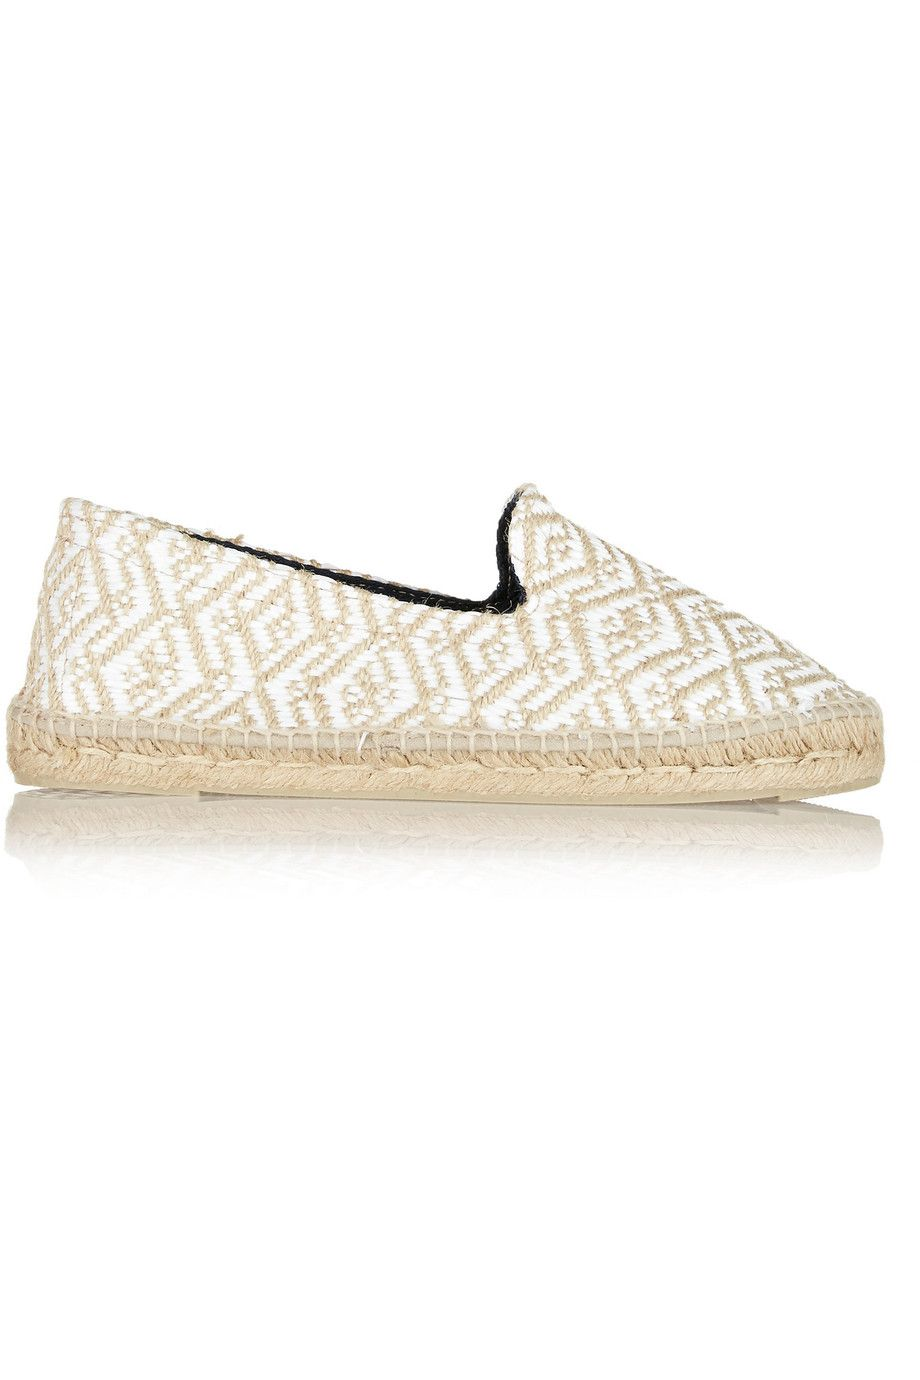 Manebi Raffia Espadrille Loafers buy cheap websites cheap visit new 3fwgxw9z